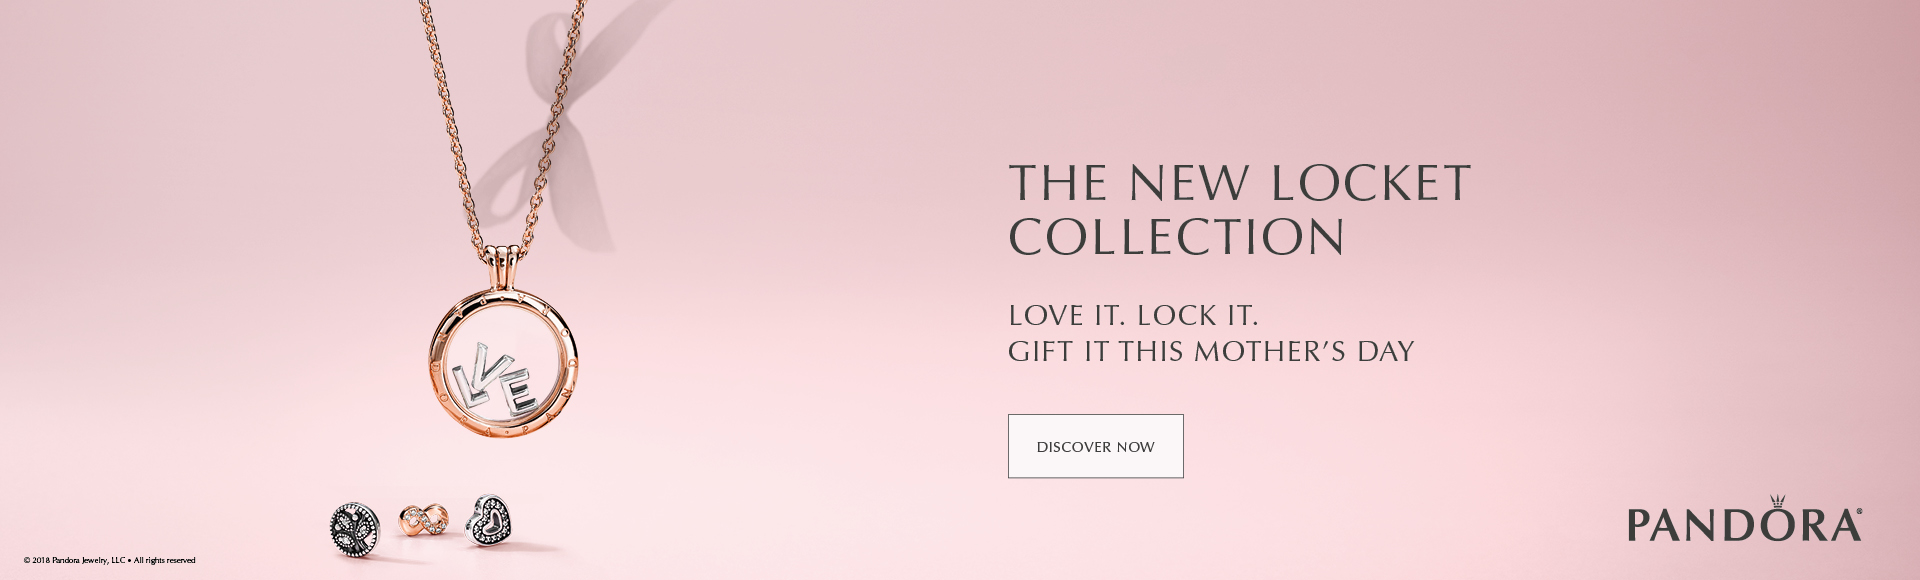 Pandora New Locket Collection for Mother's Day